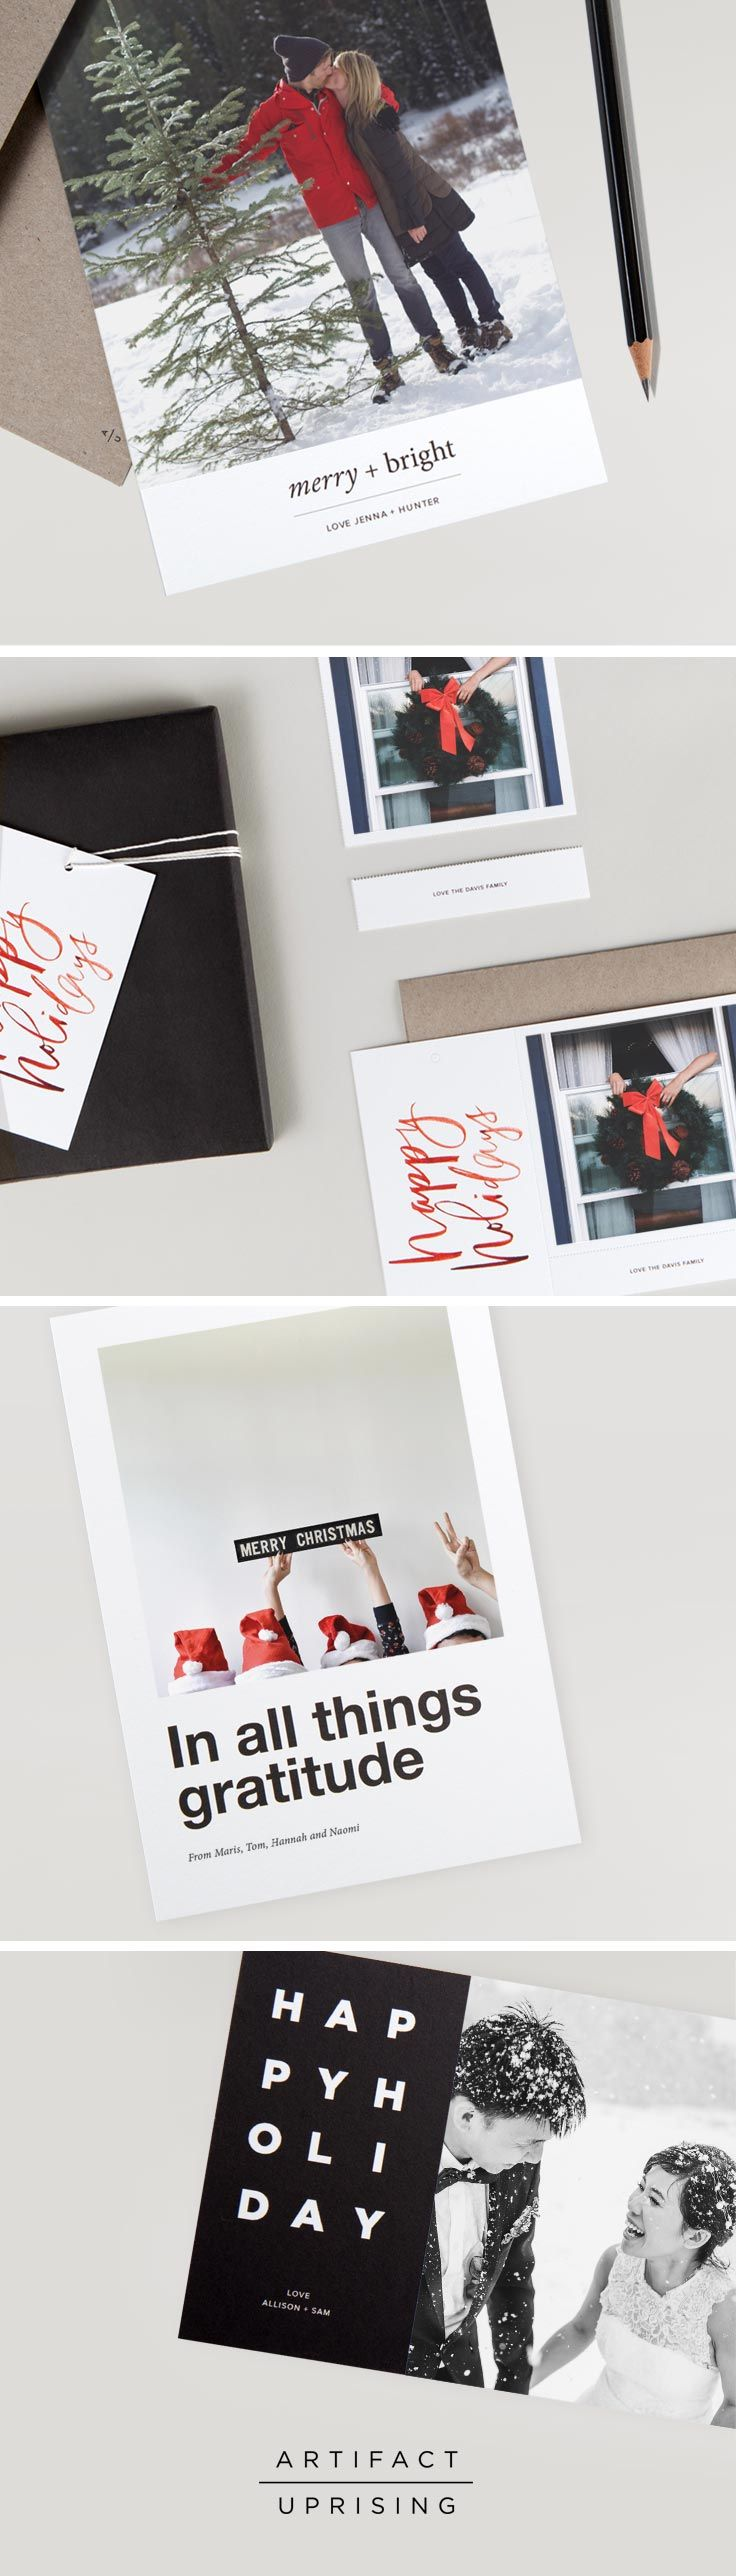 Holiday cards so good, even your neighbor will want one. The 2015 holiday photo card collection from @artifactuprsng offers exceptional holiday designs that can be customized with your favorite photo and personalized greeting. Create your cards in our online editor or straight from your iPhone, and have them delivered to your door in no time. Each holiday card is printed on 100% recycled paper and includes a kraft envelope.